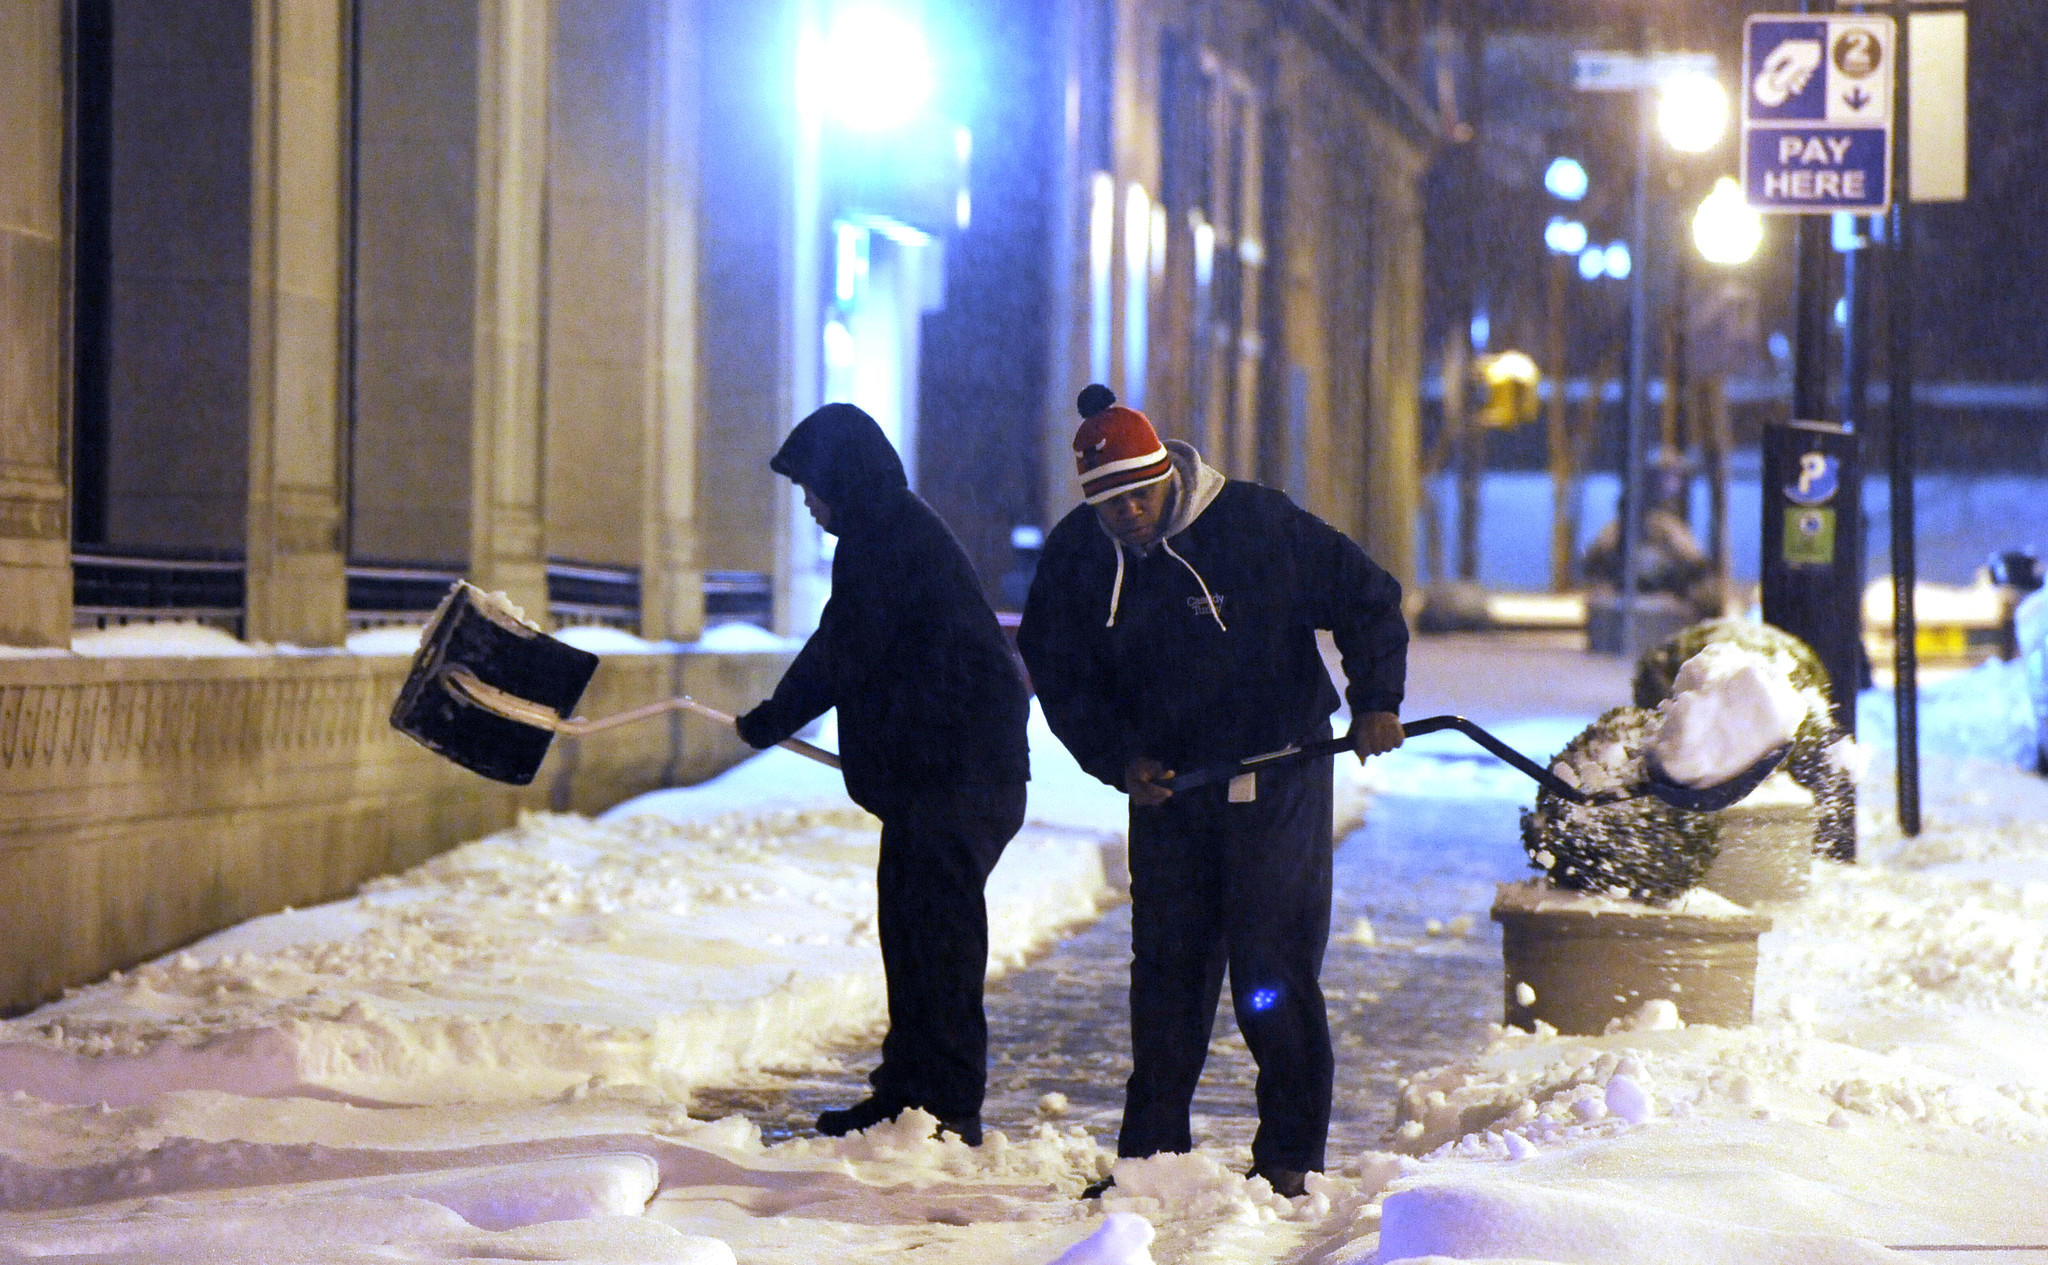 Two men work together to shovel snow on Redwood Street early one morning during a snowstorm downtown.